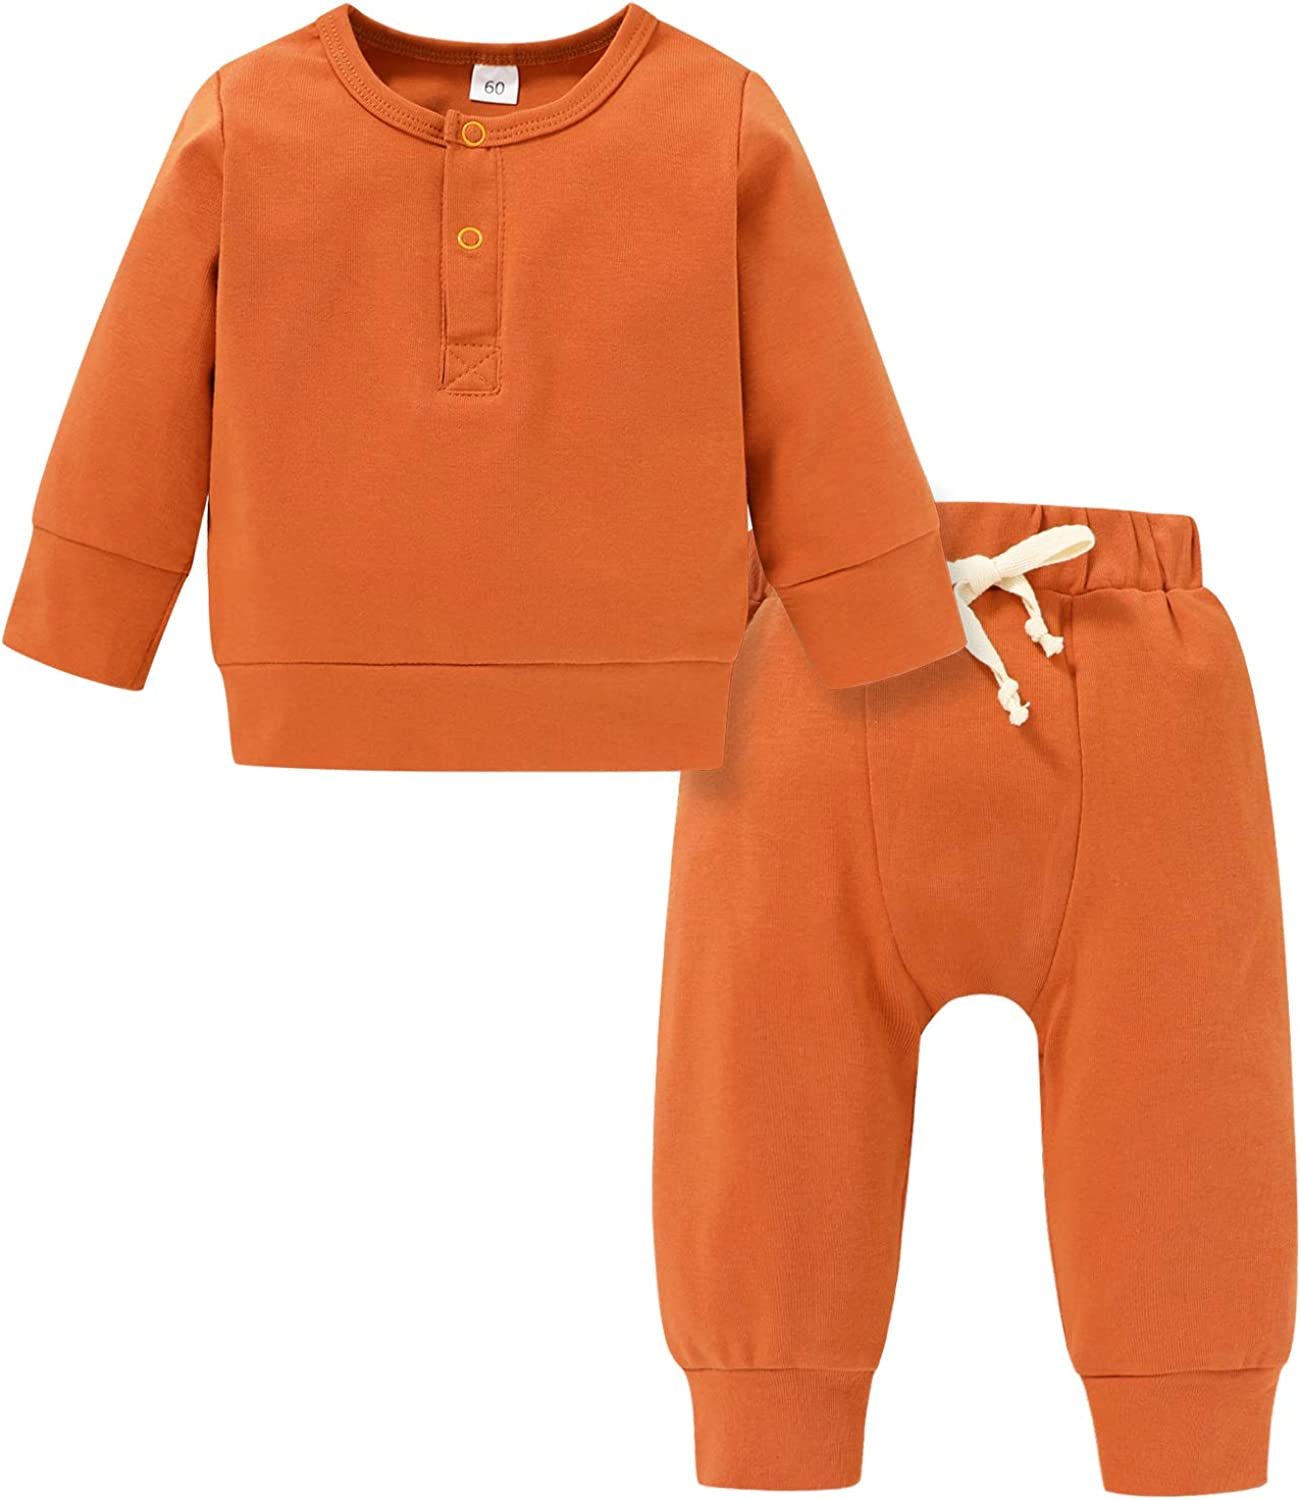 Newborn Unisex Baby Boy Girl Fall Winter Clothes Set Long Sleeve Solid Color Outfit Fall Winter 2pc Set